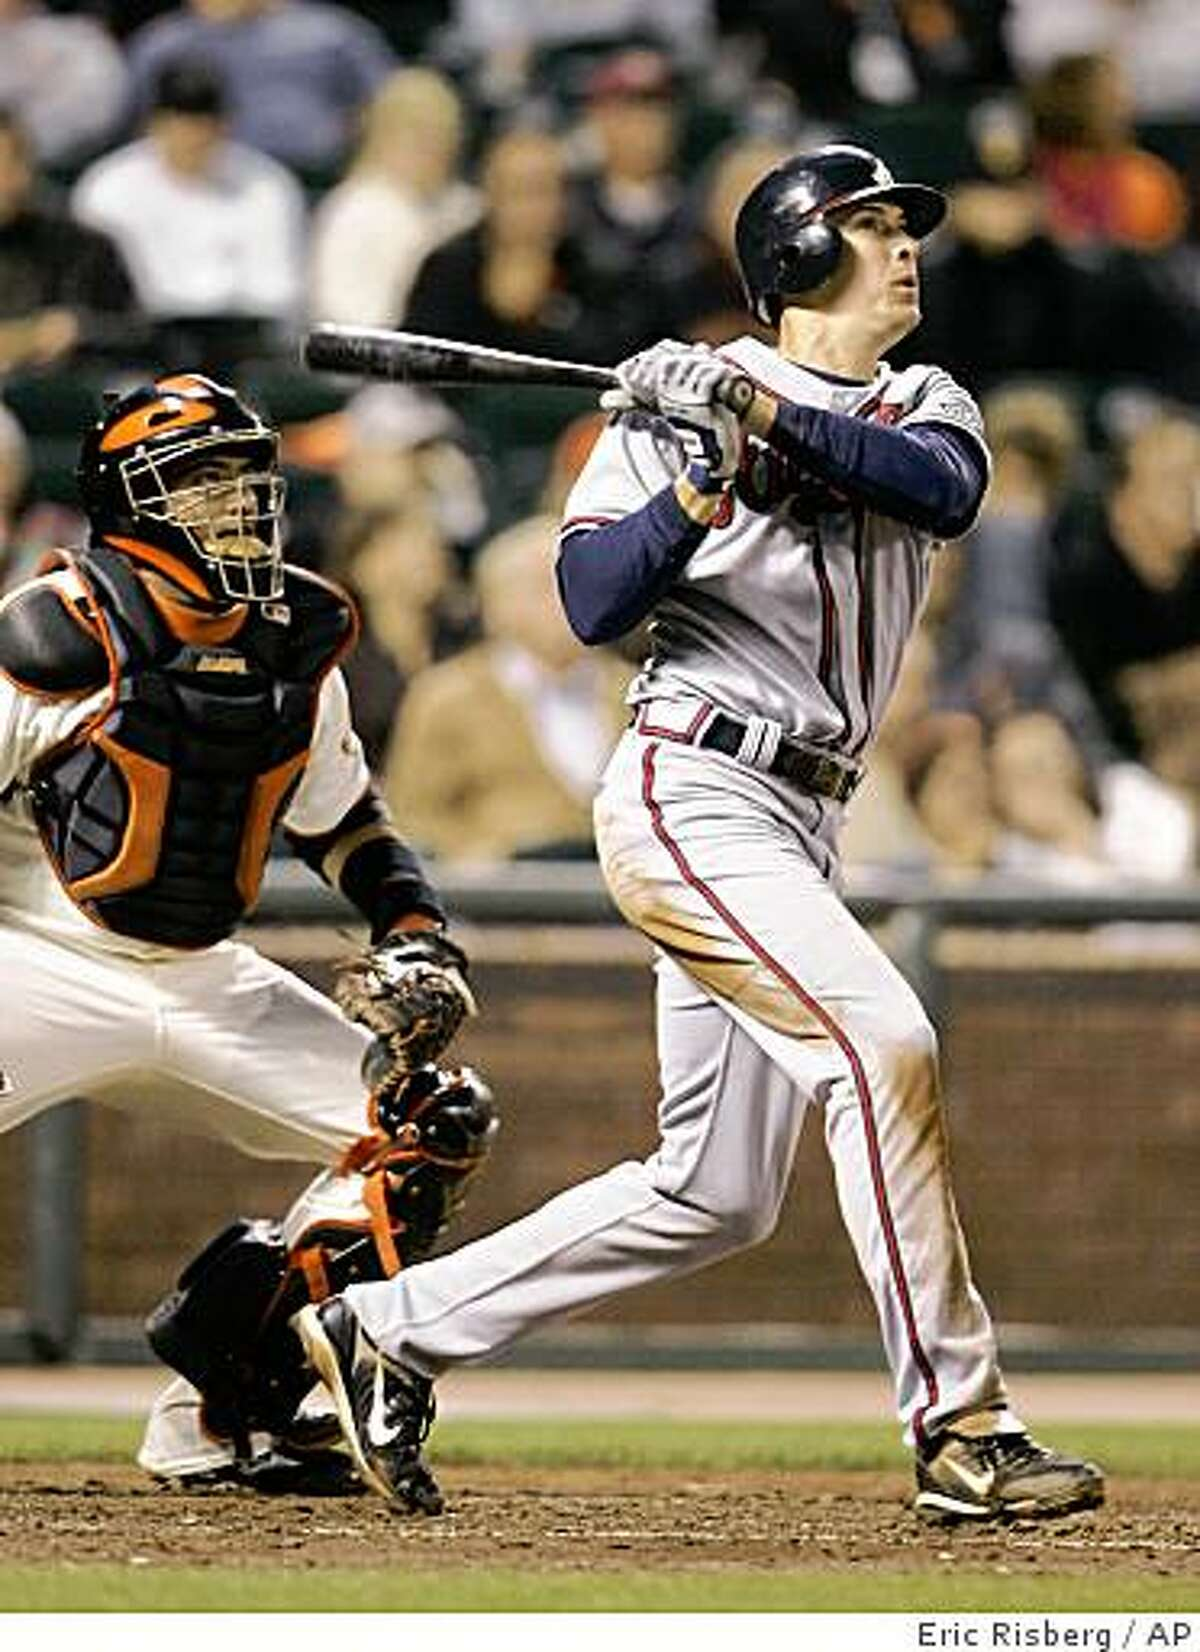 Atlanta Braves' Kelly Johnson hits a double to center field off San Francisco Giants starting pitcher Jonathan Sanchez during the fifth inning of a baseball game in San Francisco, Tuesday, Aug. 5, 2008. At left is San Francisco Giants catcher Bengie Molina. Atlanta won the game 11-4. (AP Photo/Eric Risberg)